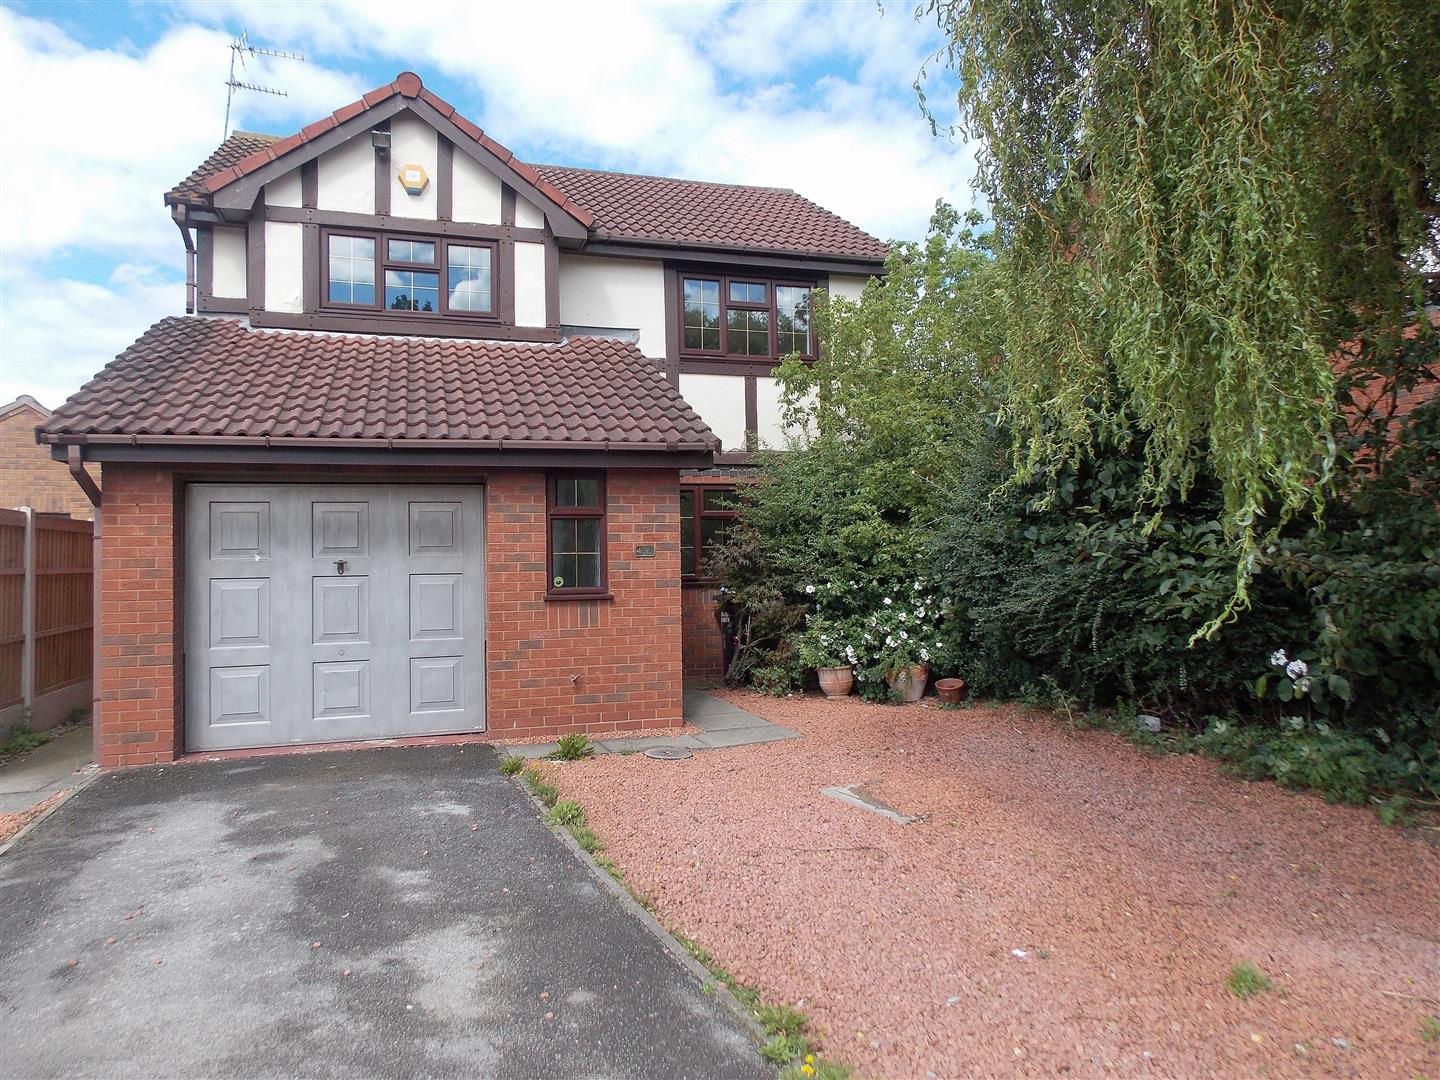 4 Bedrooms Detached House for sale in Elgar Drive, Long Eaton